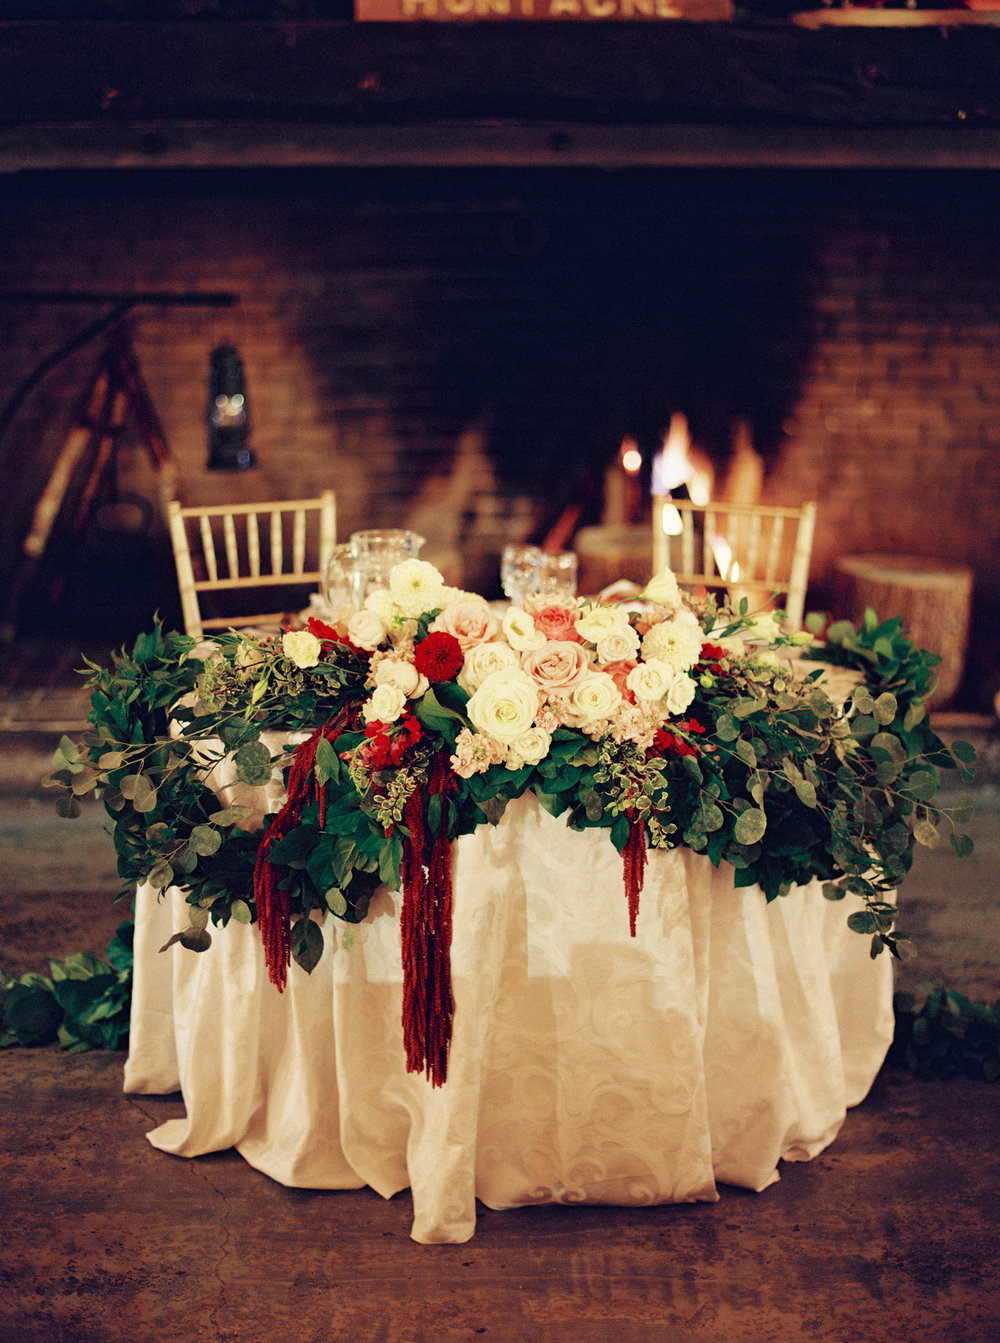 0122-WhenHeFoundHer-SugarShack-QuebecWedding-MagnoliaRouge.jpg